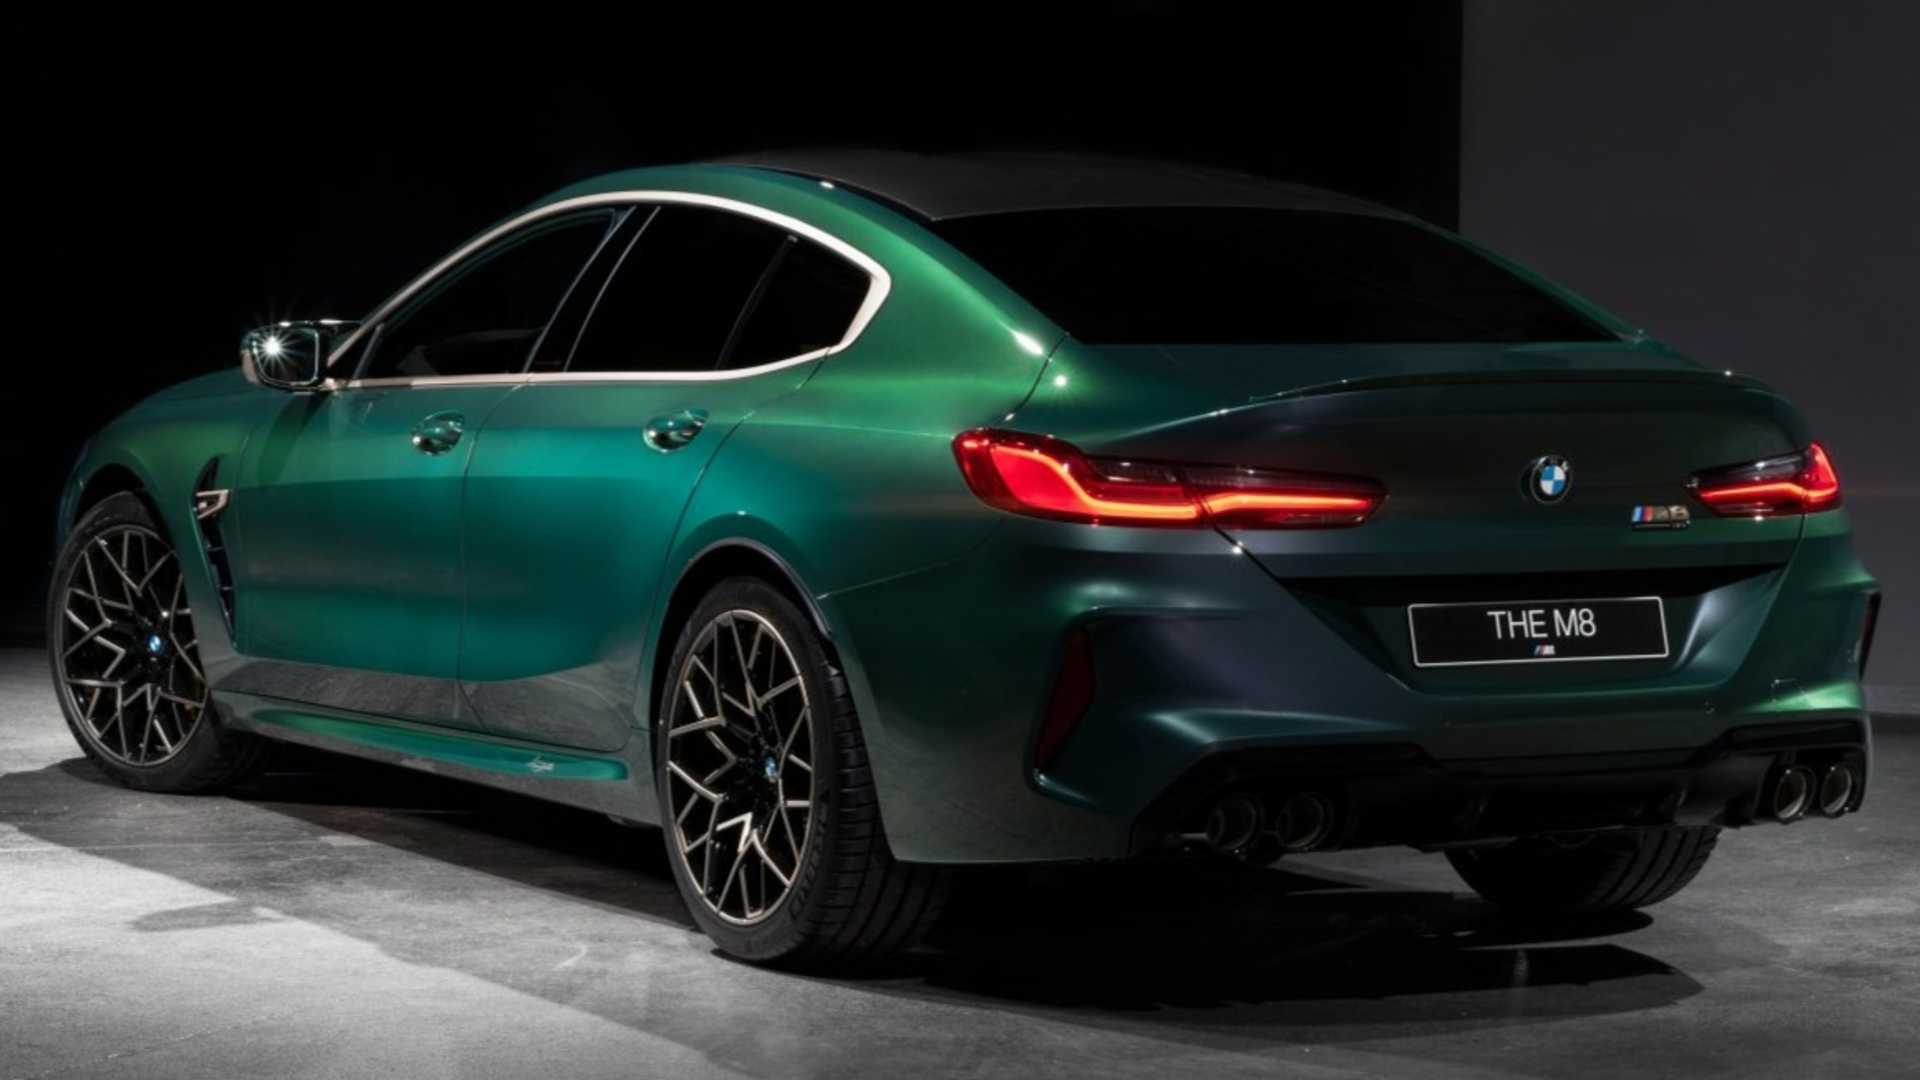 BMW M8 Gran Coupe First Edition 8 Of 8 Is An Ultra Rare M Sedan 1920x1080